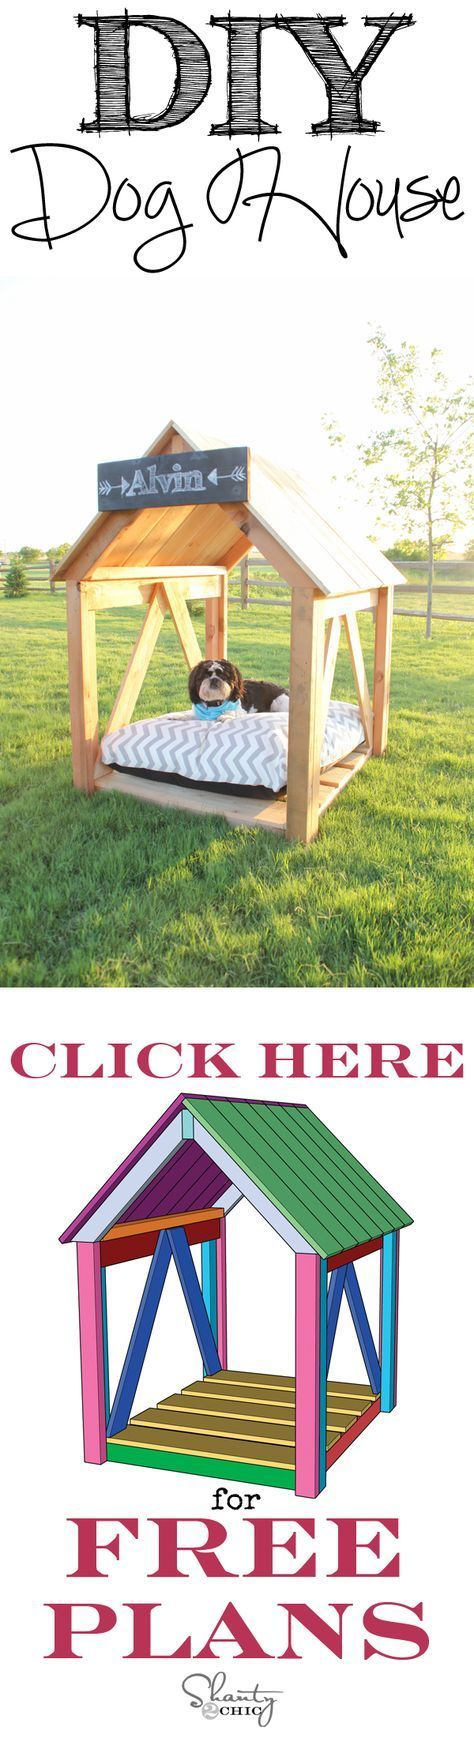 pin by tipscasa on case per 4 zampe pinterest dog houses dog